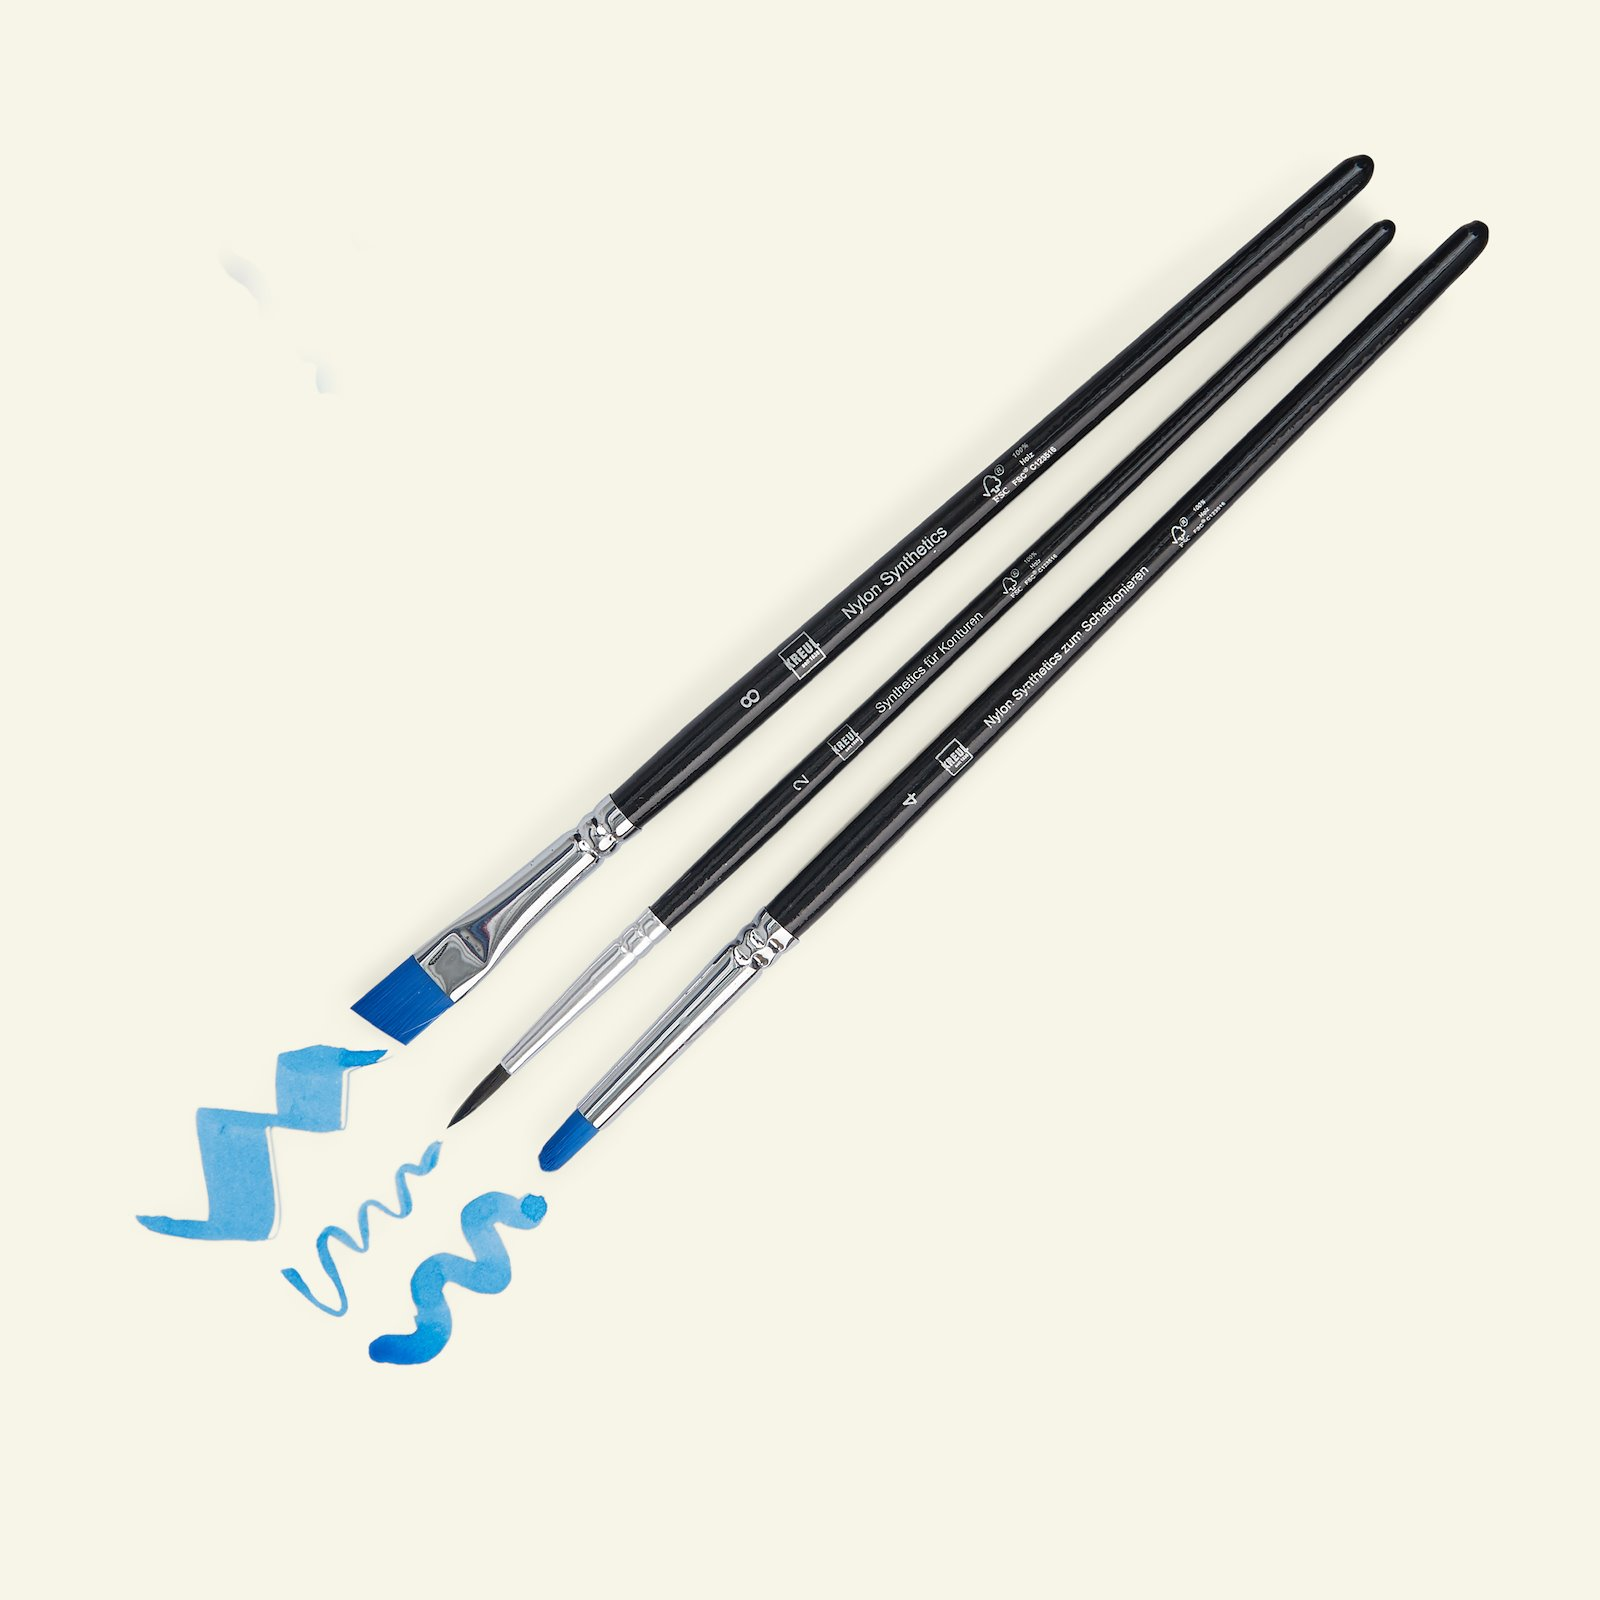 Javana brushes for coarse textiles 3pcs 29186_pack